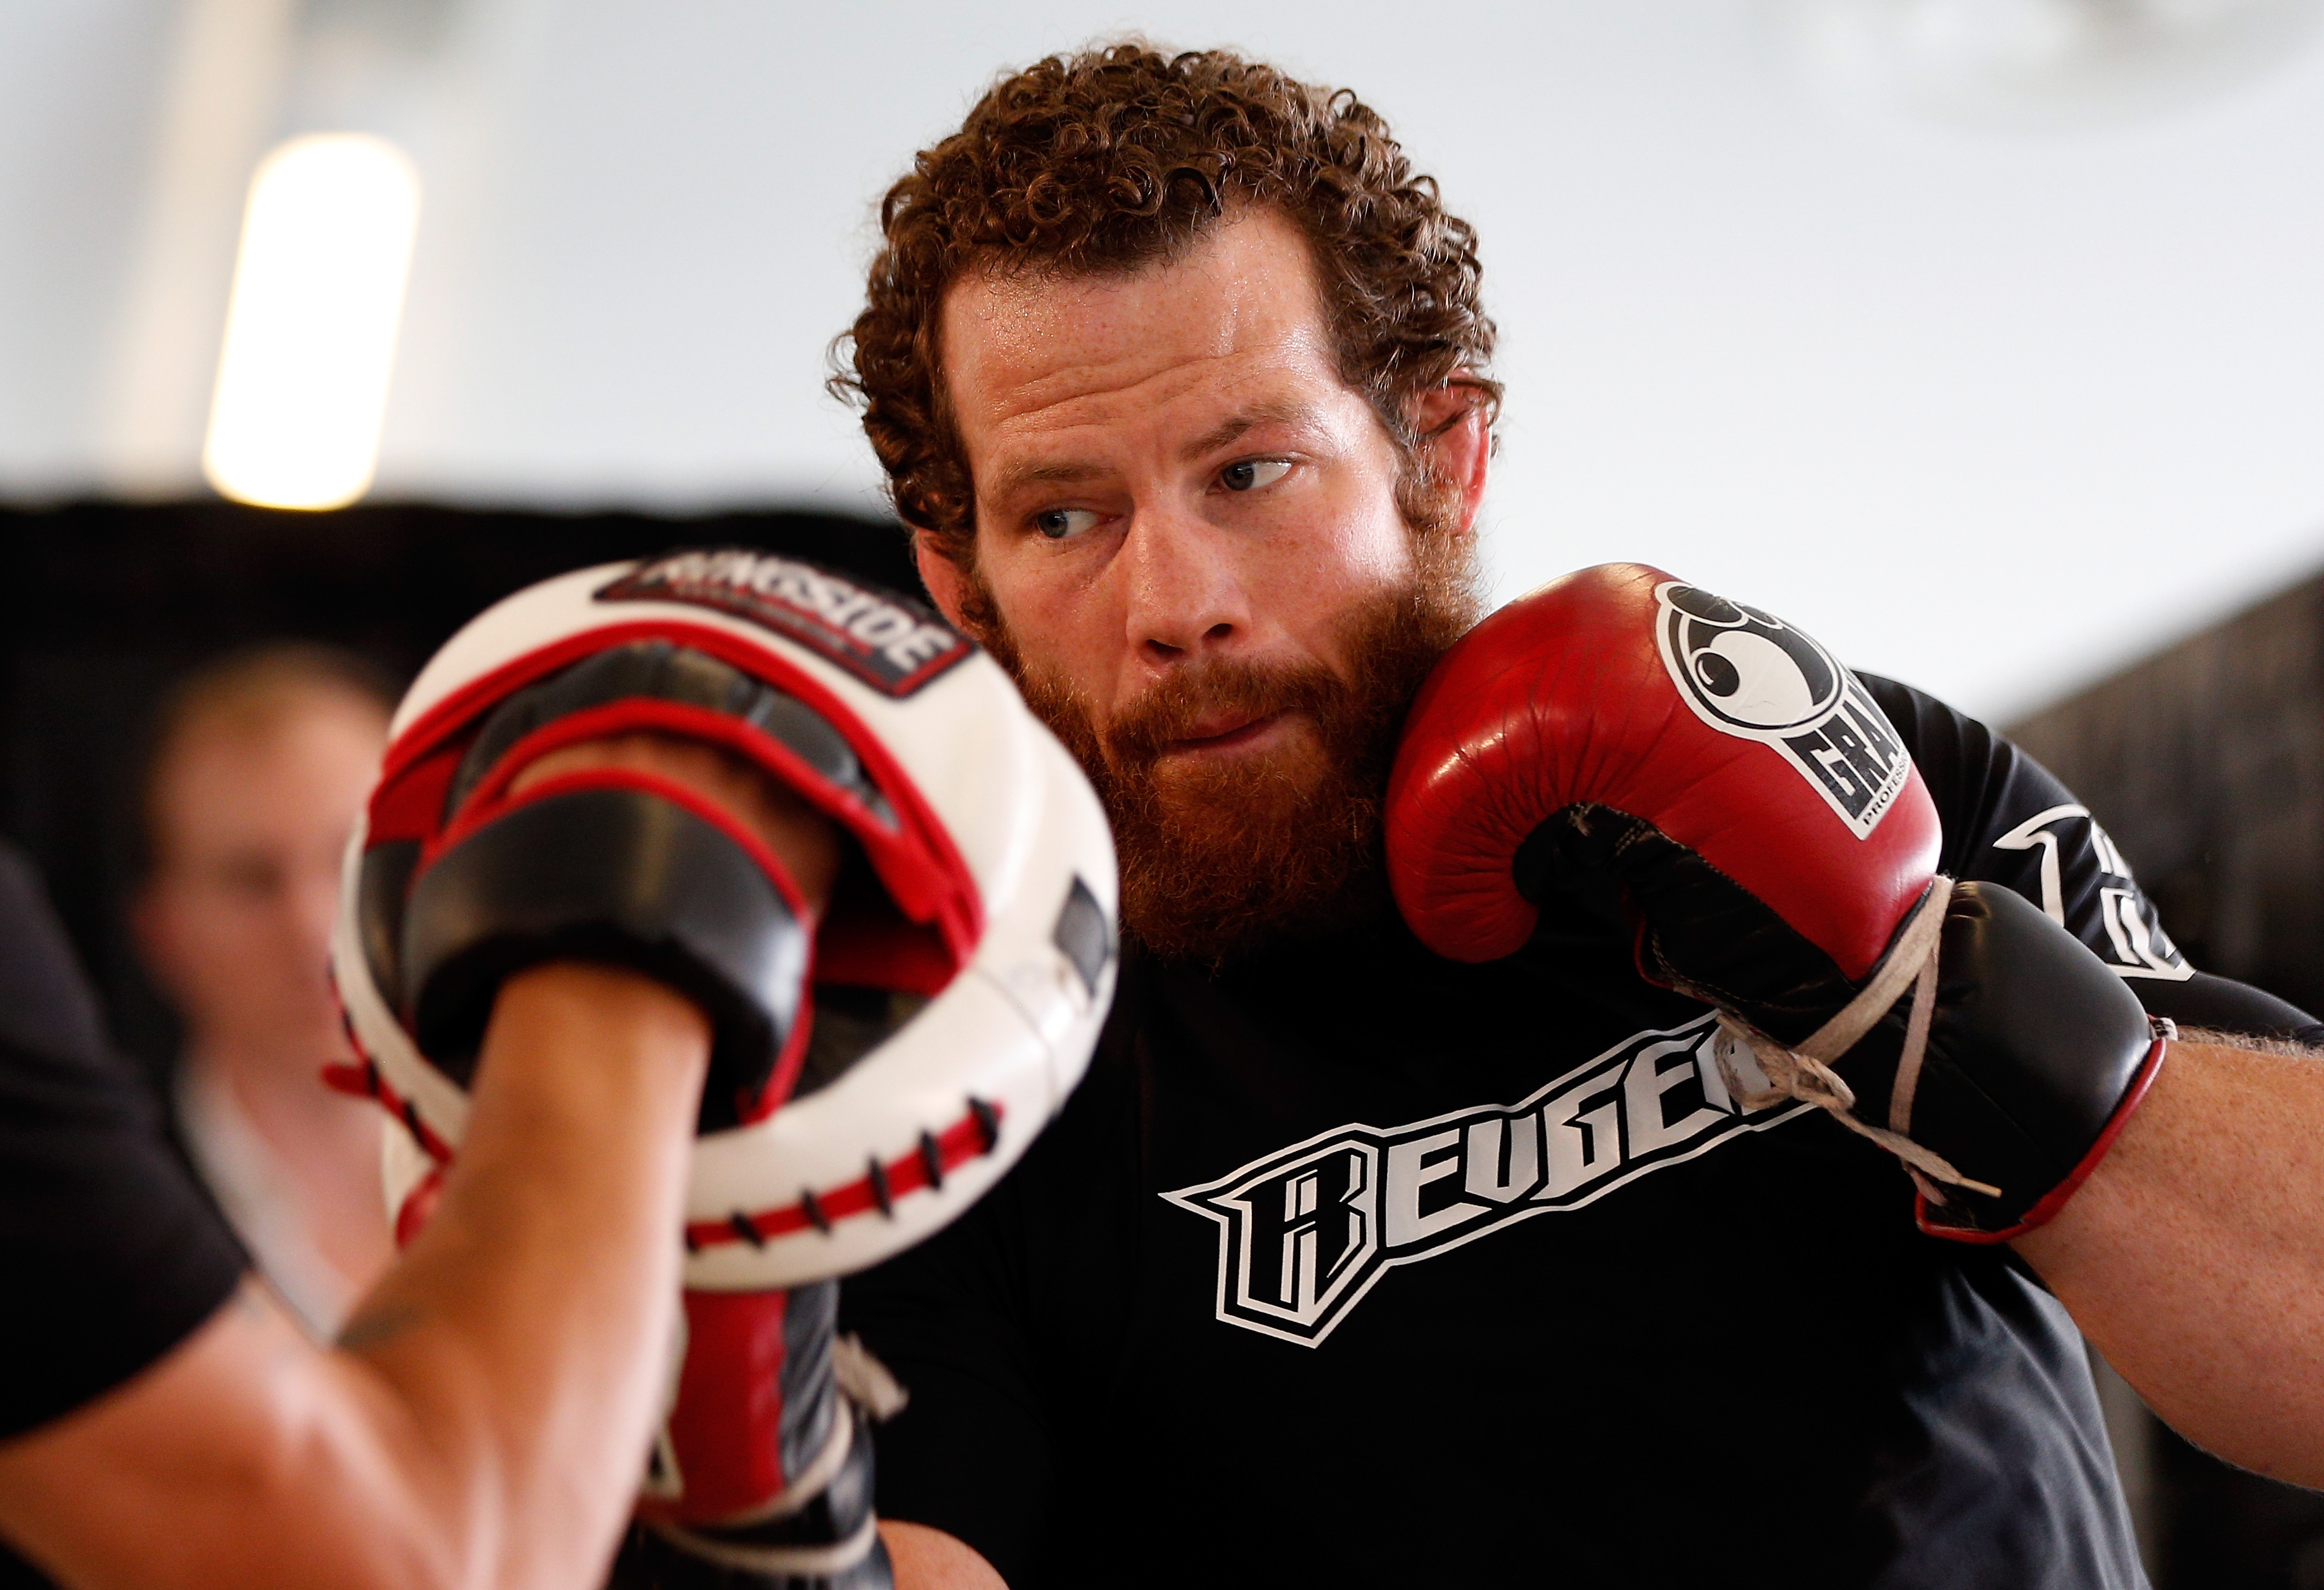 Nate Marquardt during open workouts for a UFC Fight Night event in 2014.